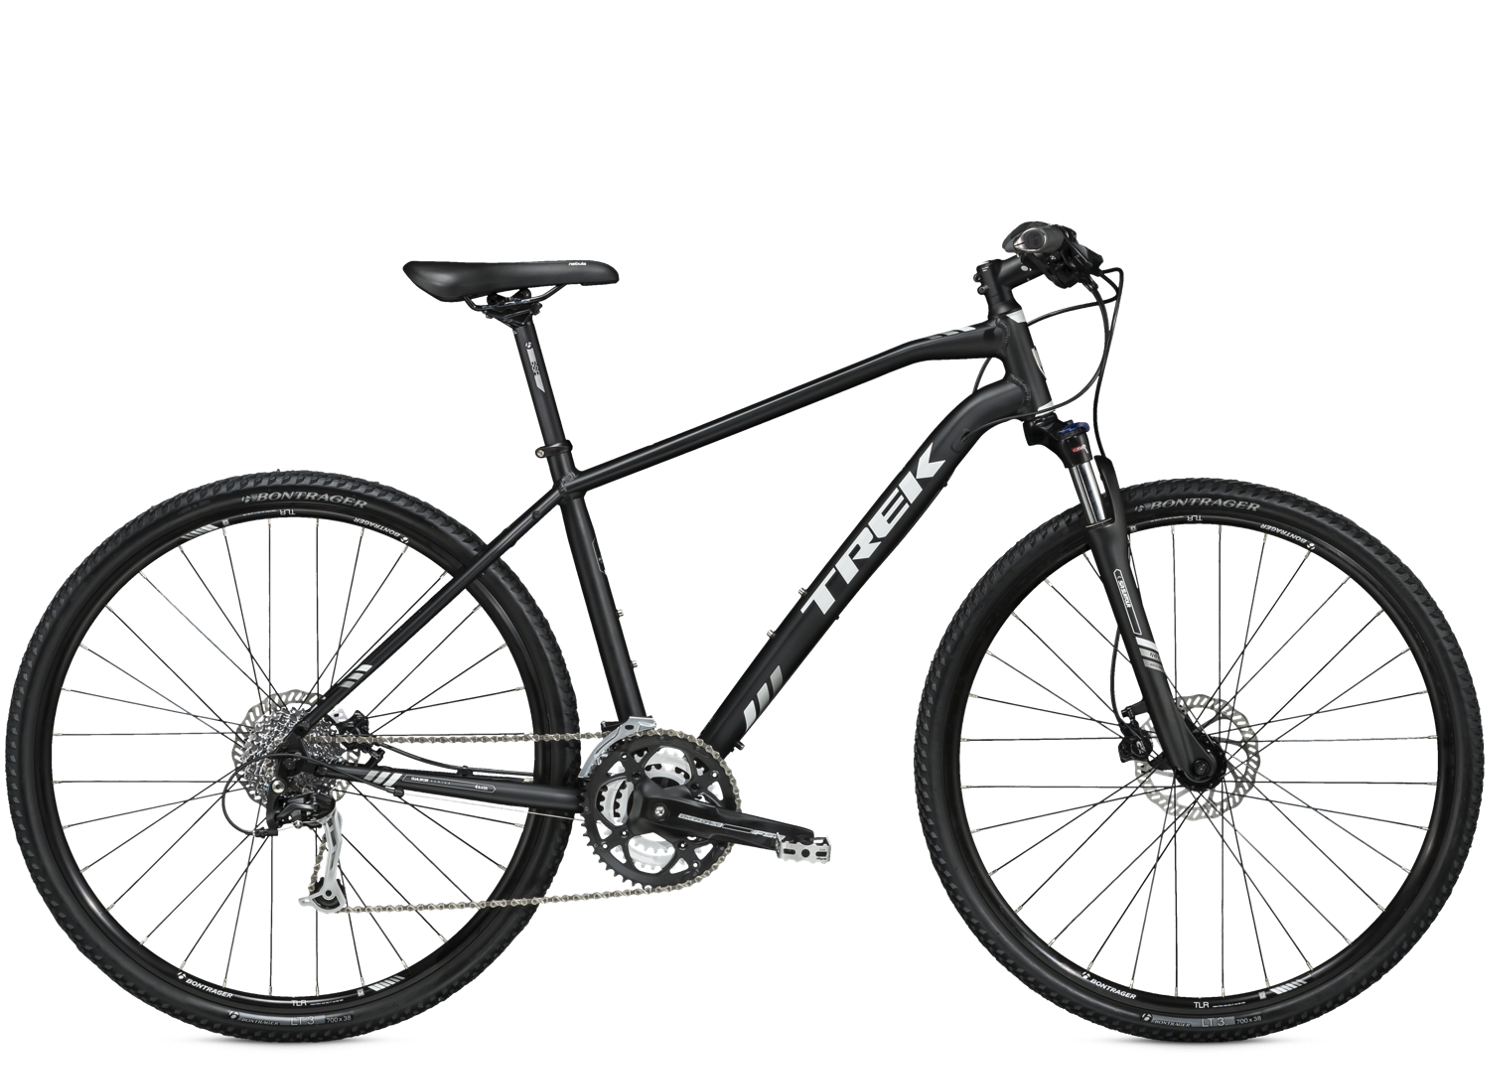 7fa41731d88 Bumsteads Road and Mountain Bikes: 2015 Trek Dual Sport 8.4 Specs and  Features